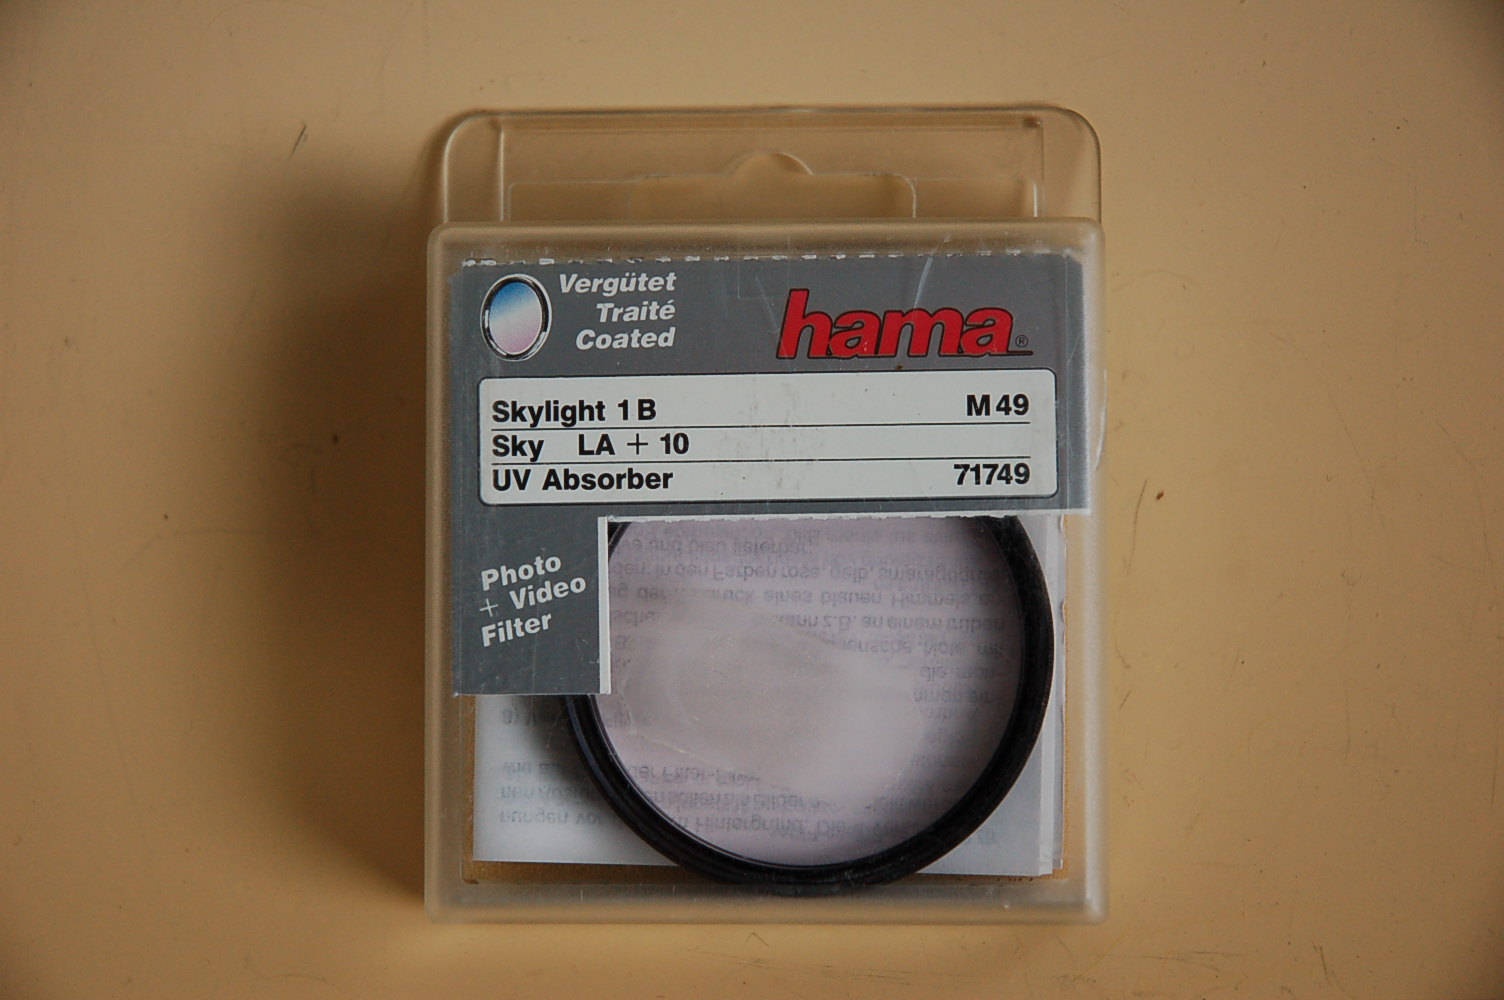 Hama Filter Skylight 1B (LA+10) M49 #71749